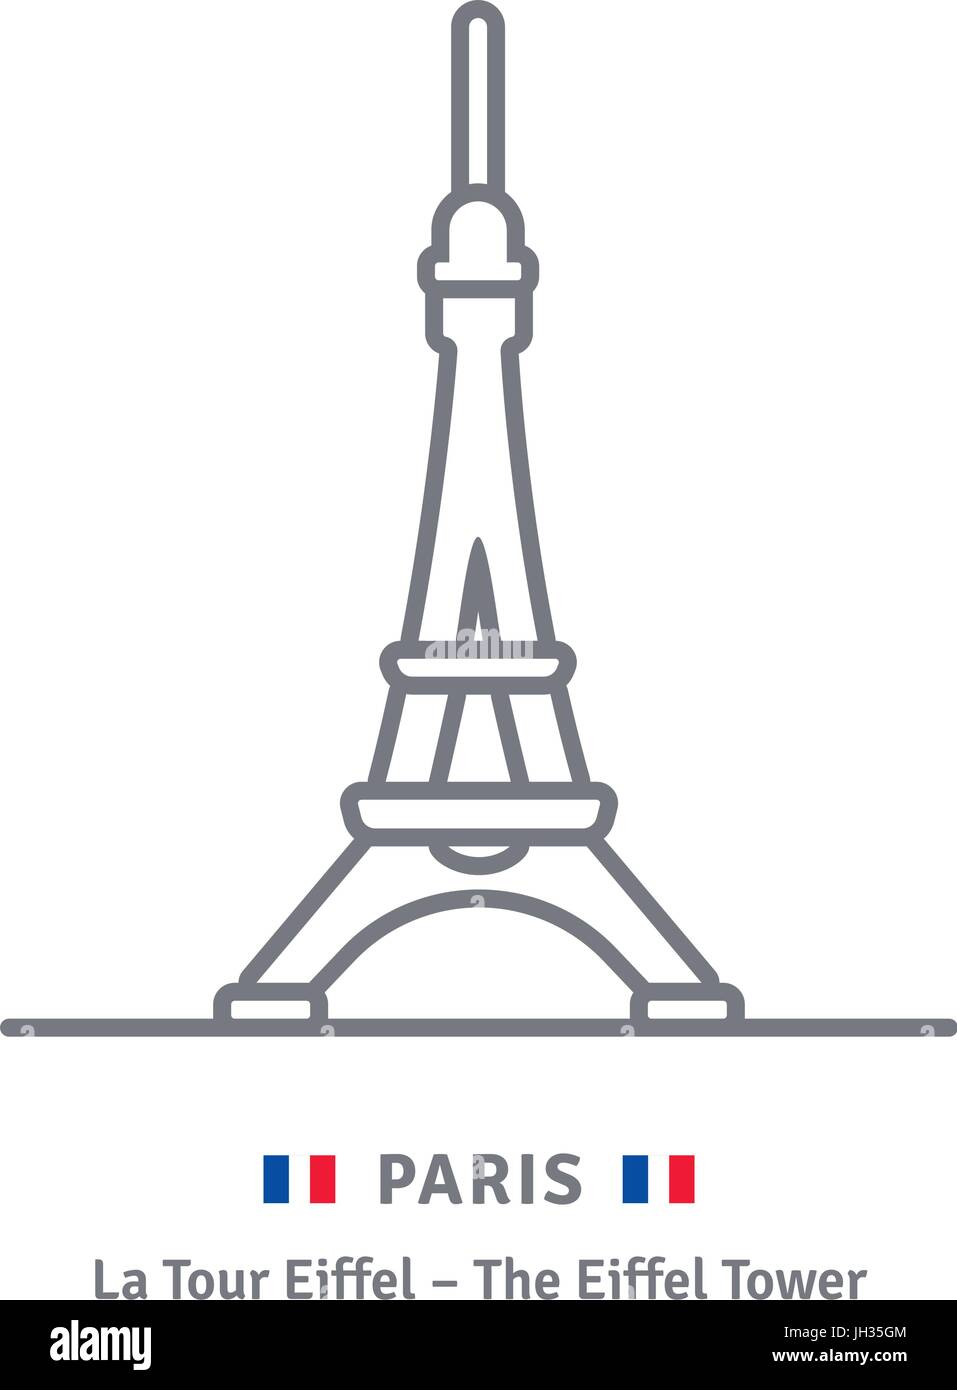 Paris line icon. Eiffel Tower and French flag vector illustration. - Stock Image